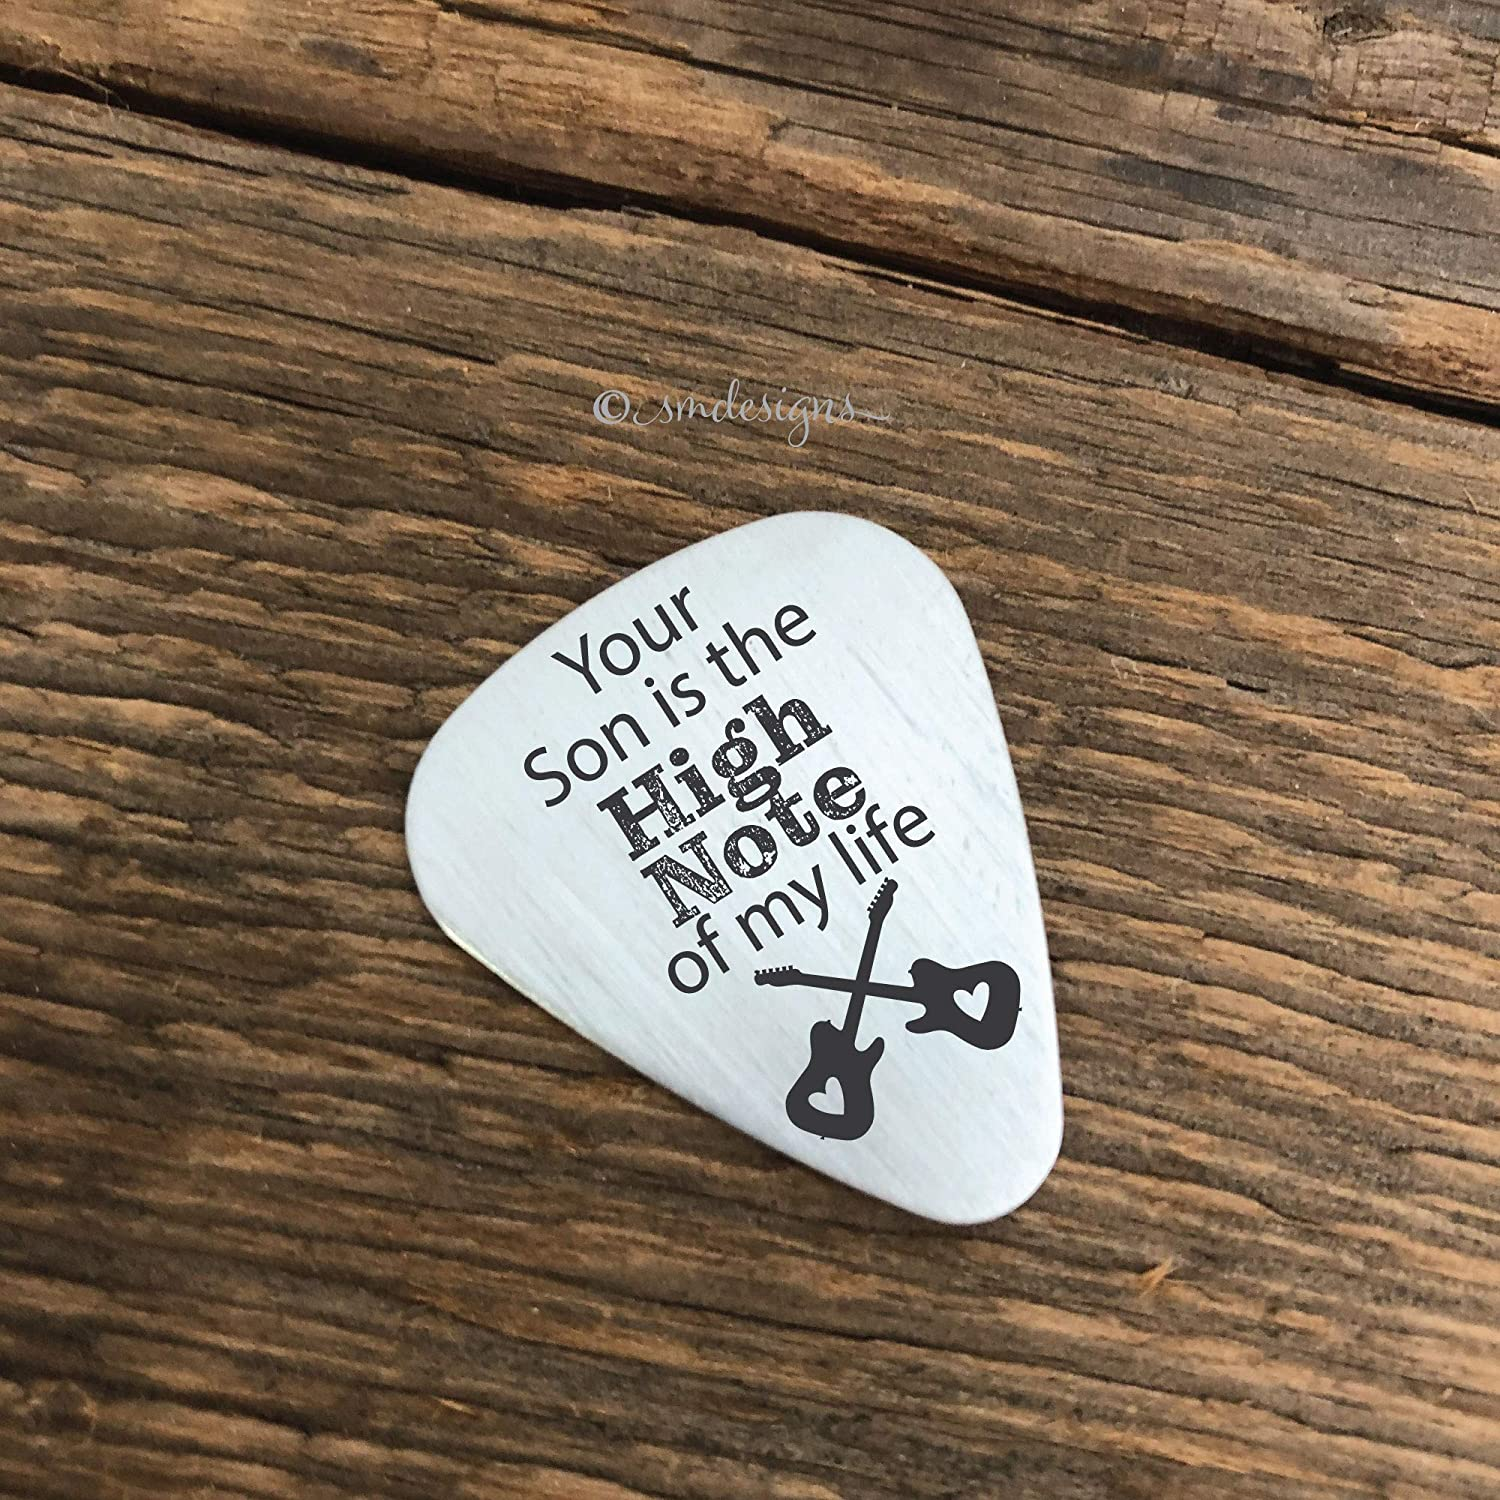 Amazon Com Your Son Is The High Note Of My Life Guitar Pick Gift Idea Engraved Guitar Pick Gift For In Laws Birthday Gift Christmas Gift Engagement Present Handmade